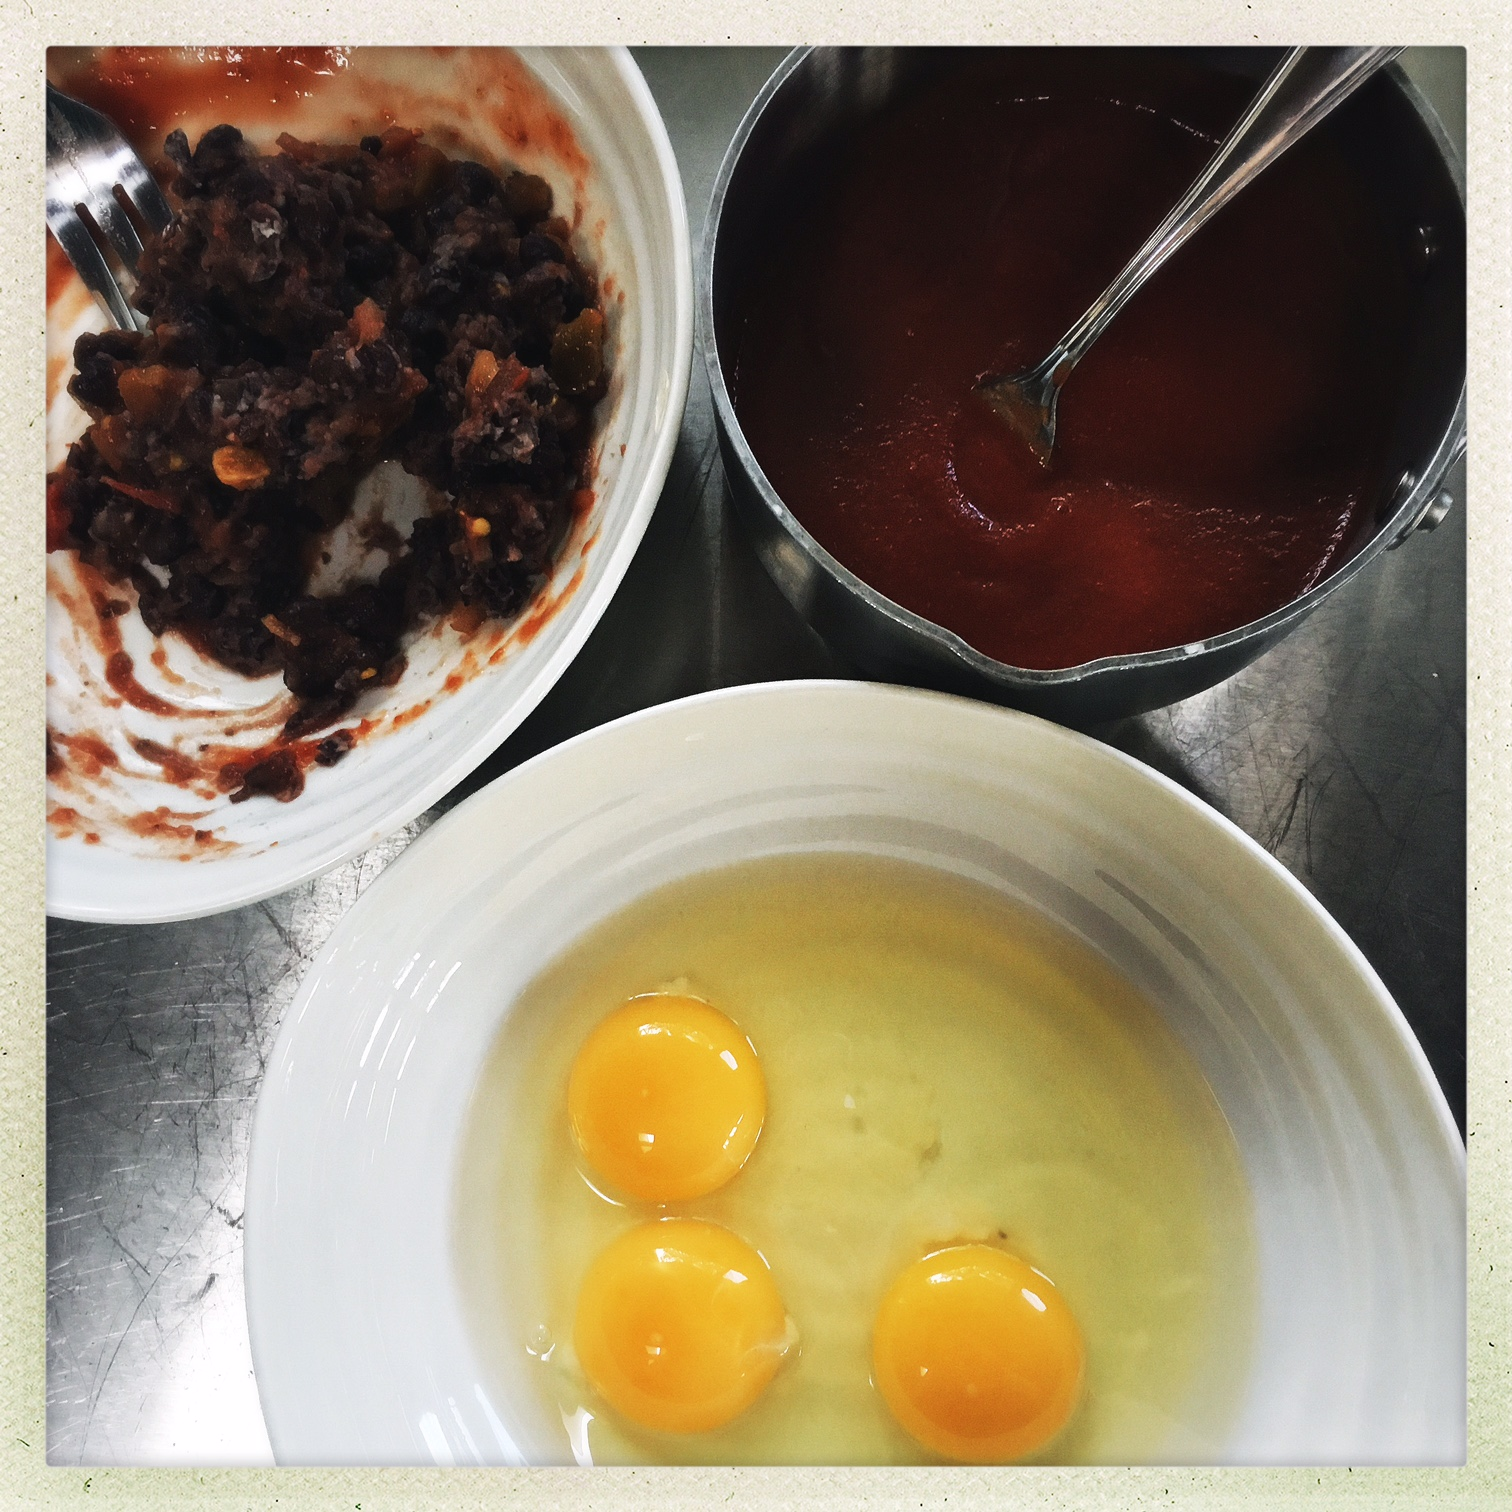 eggs ready to scramble.jpg